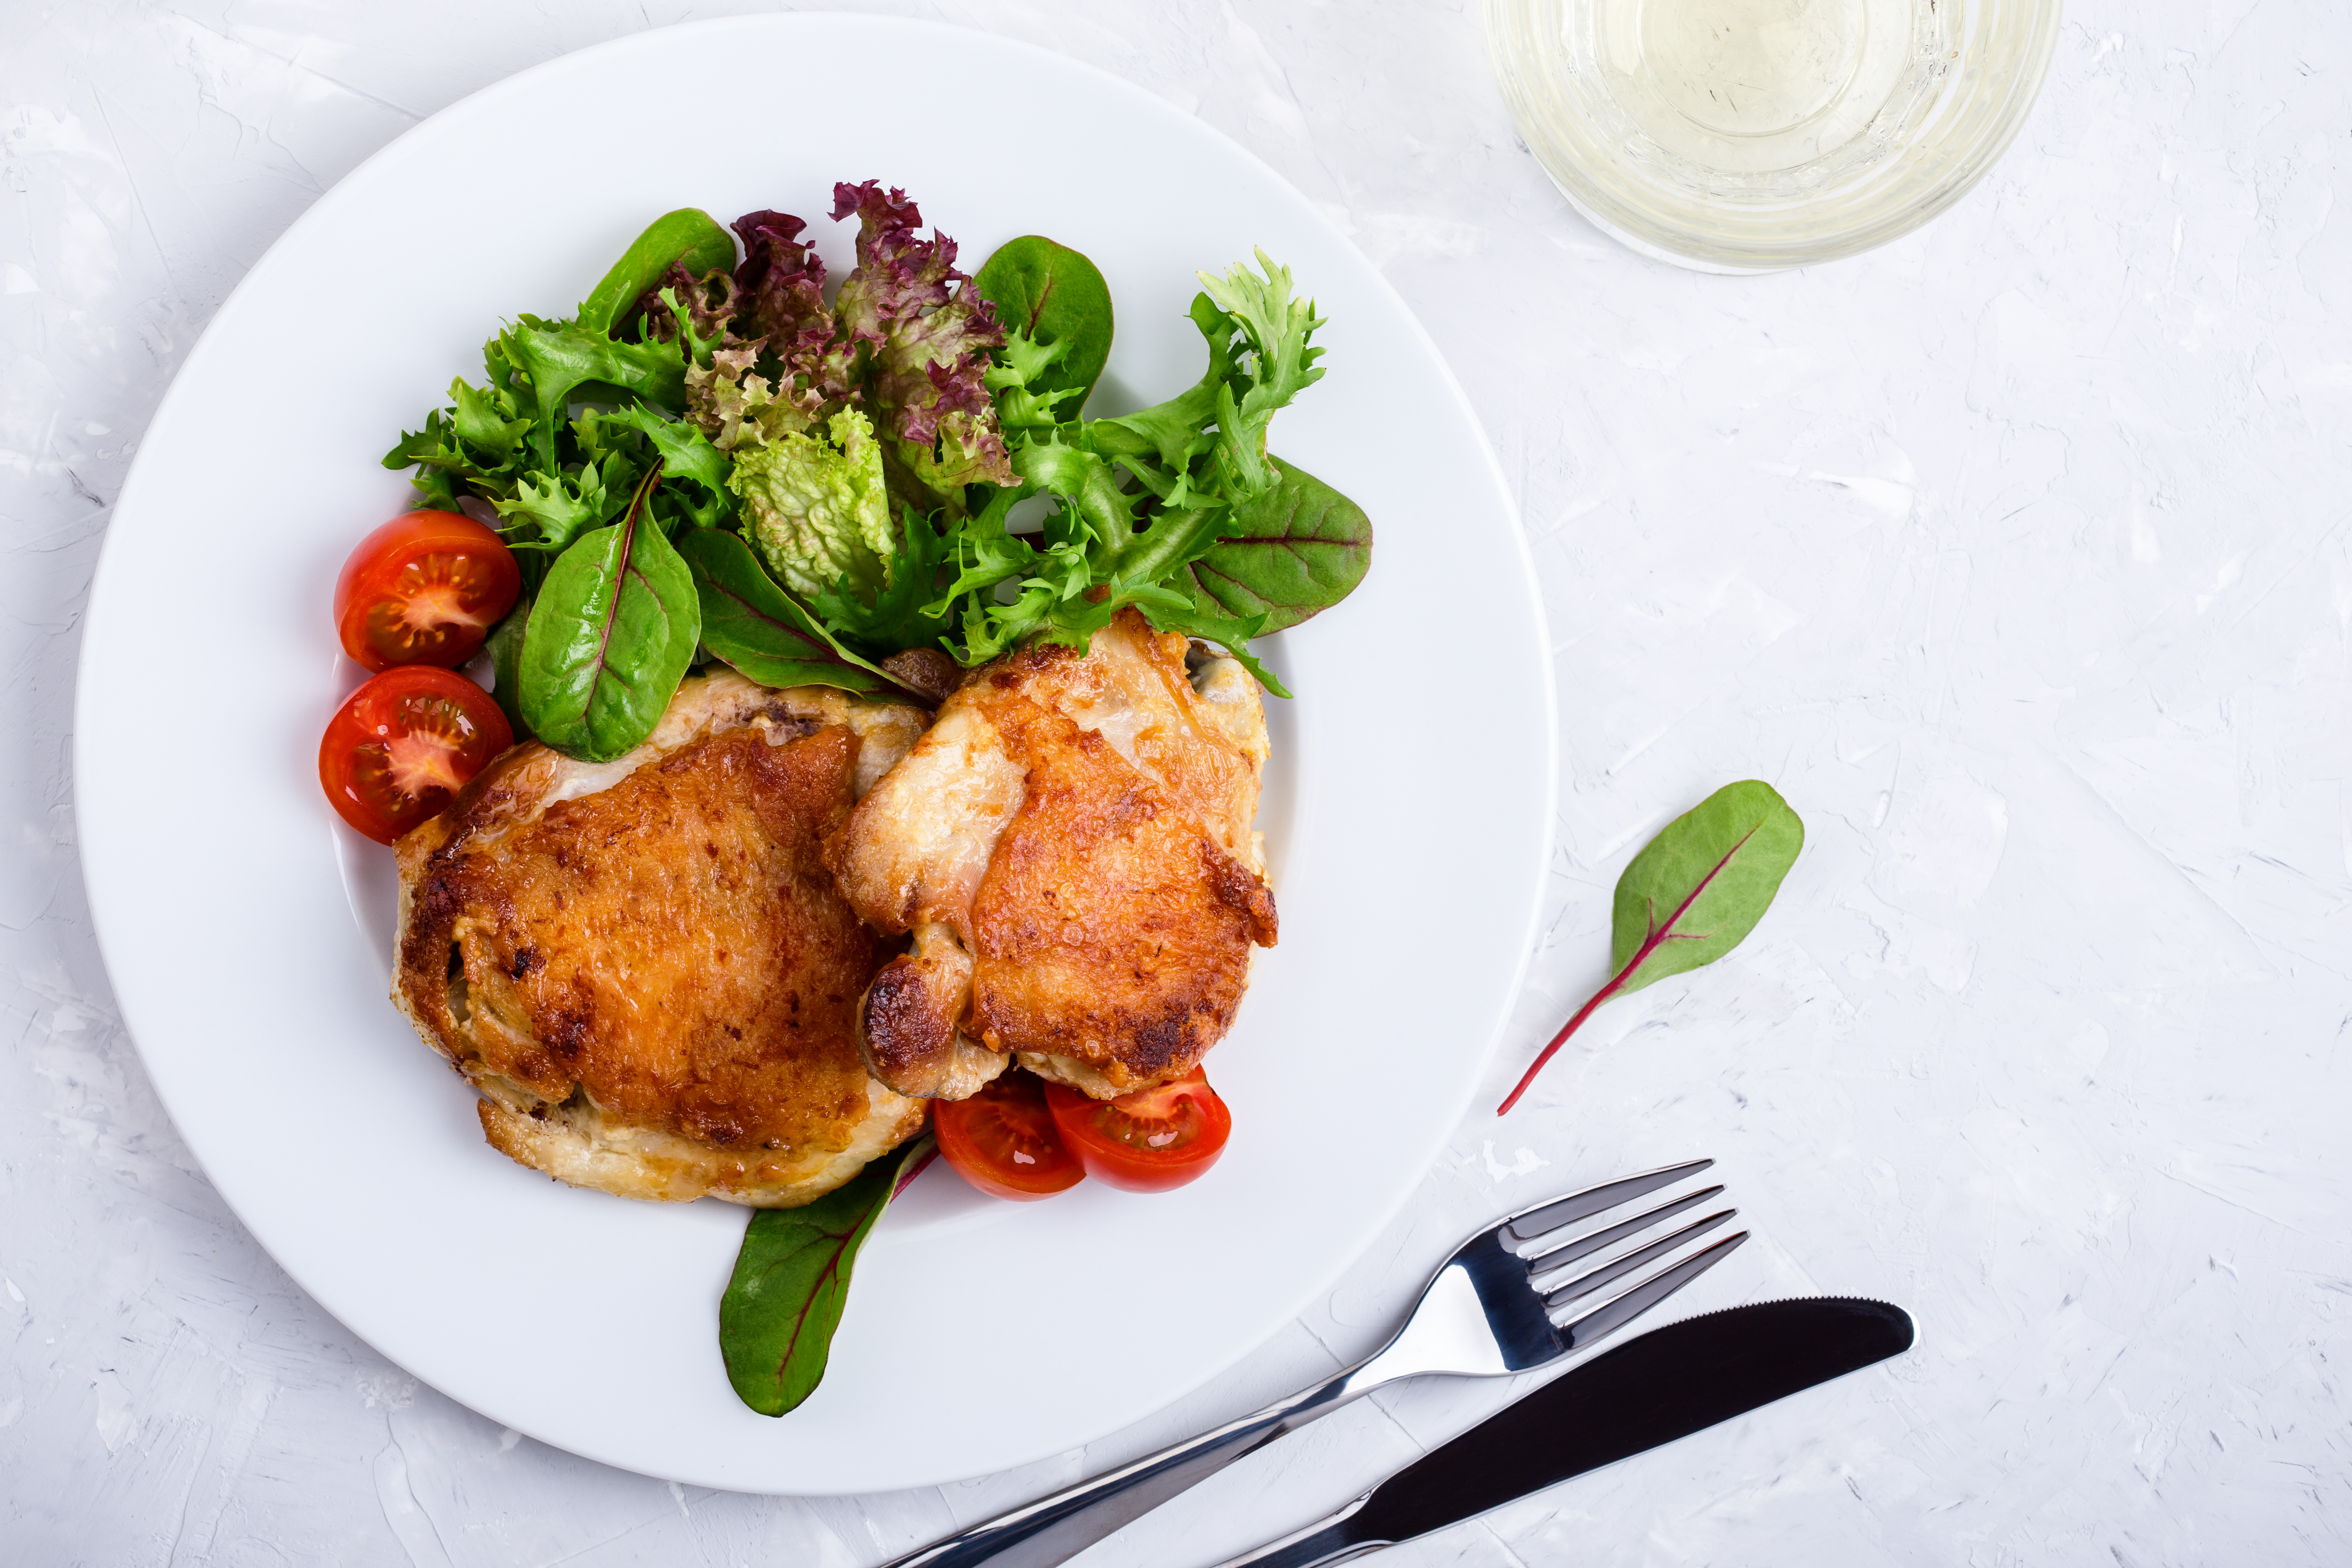 How Much Protein Is in 4 Ounces of Chicken? | Healthy Eating | SF Gate